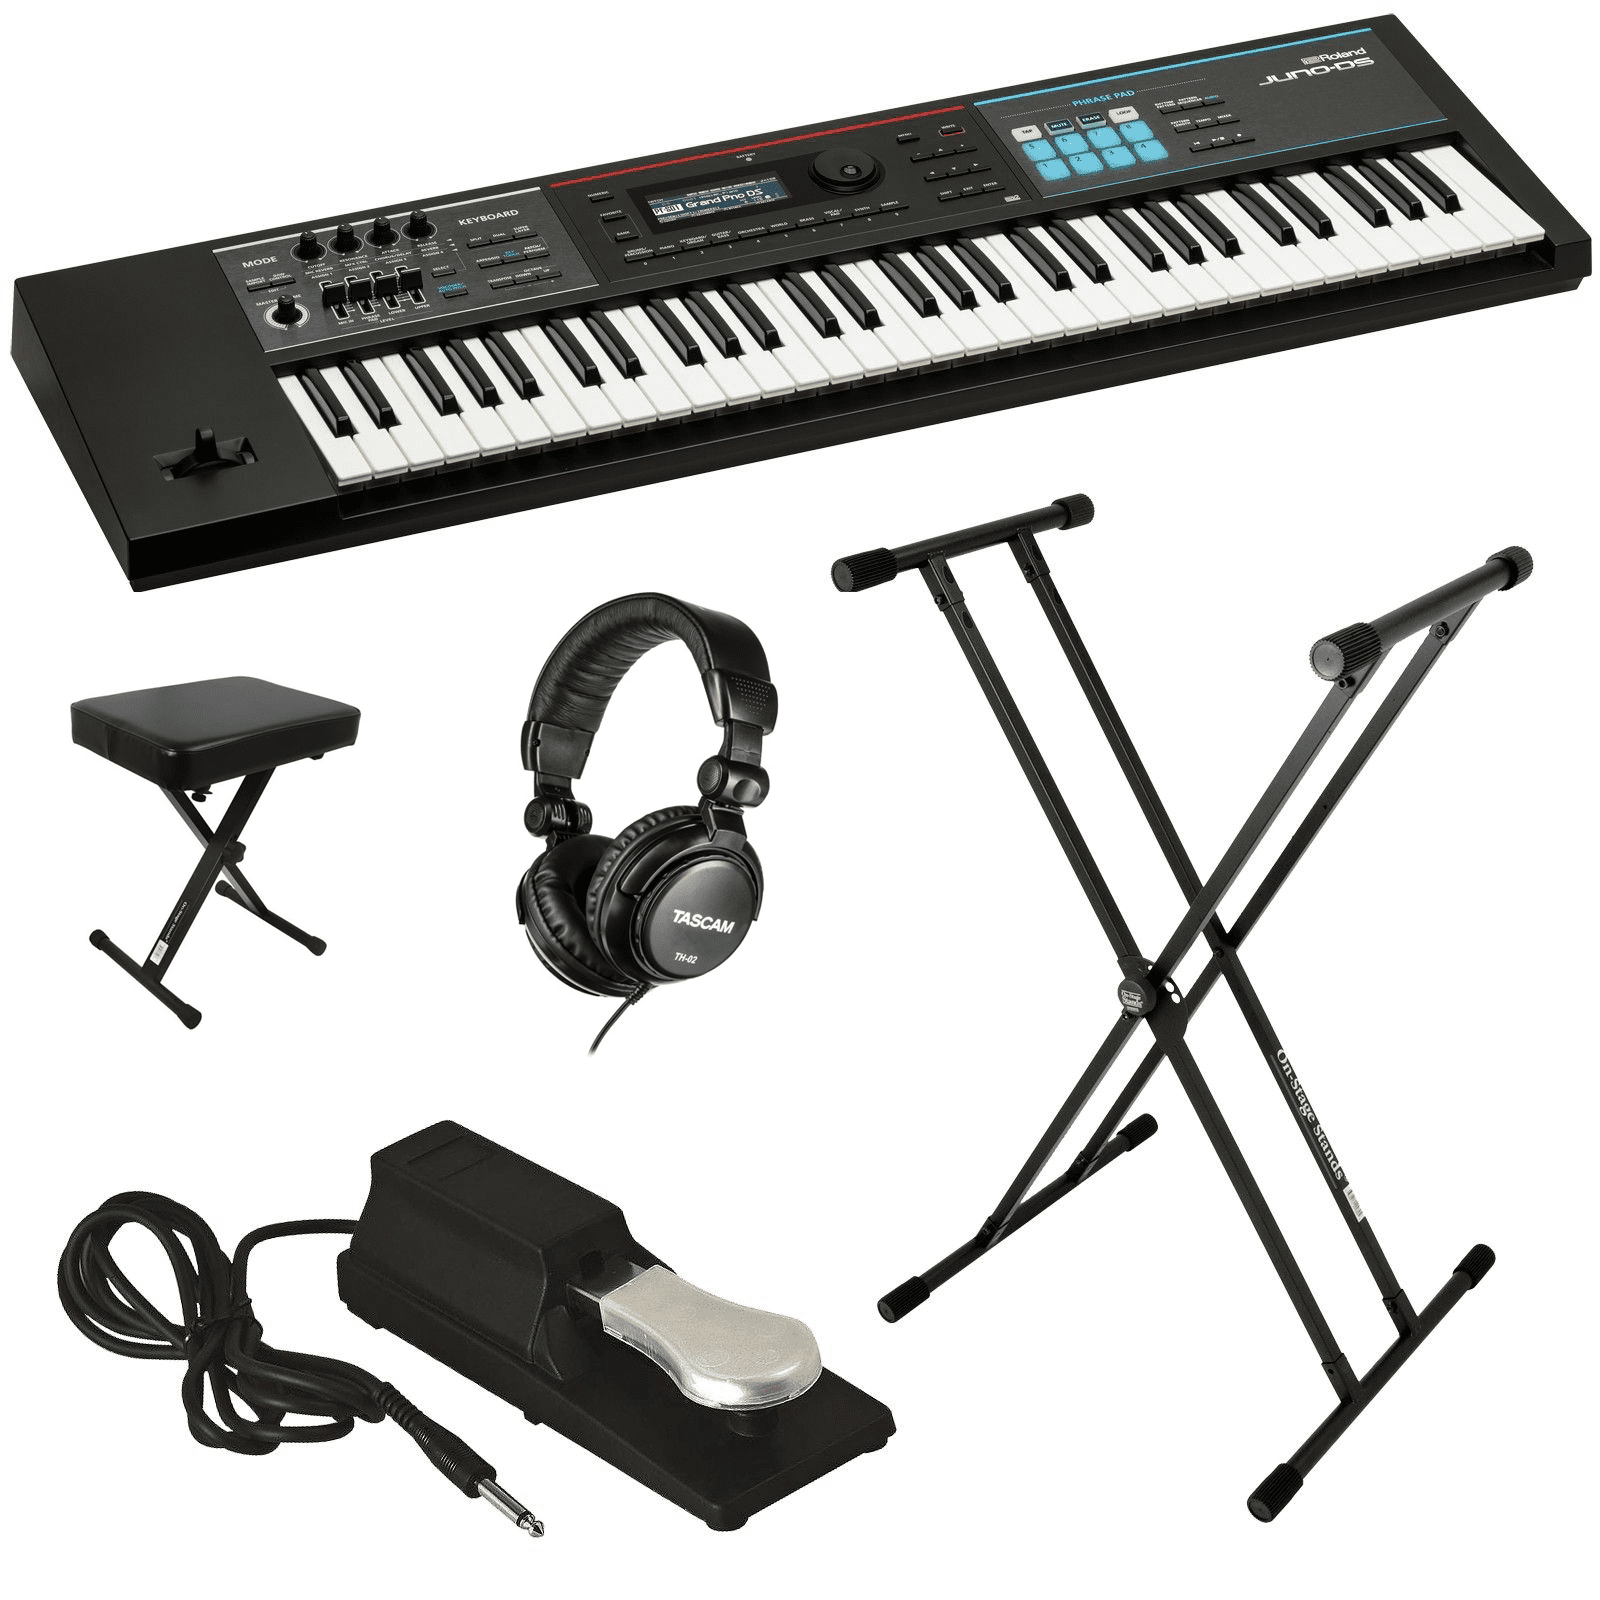 ROLAND JUNO-DS61 SYNTHESIZER KEY ESSENTIALS BUNDLE